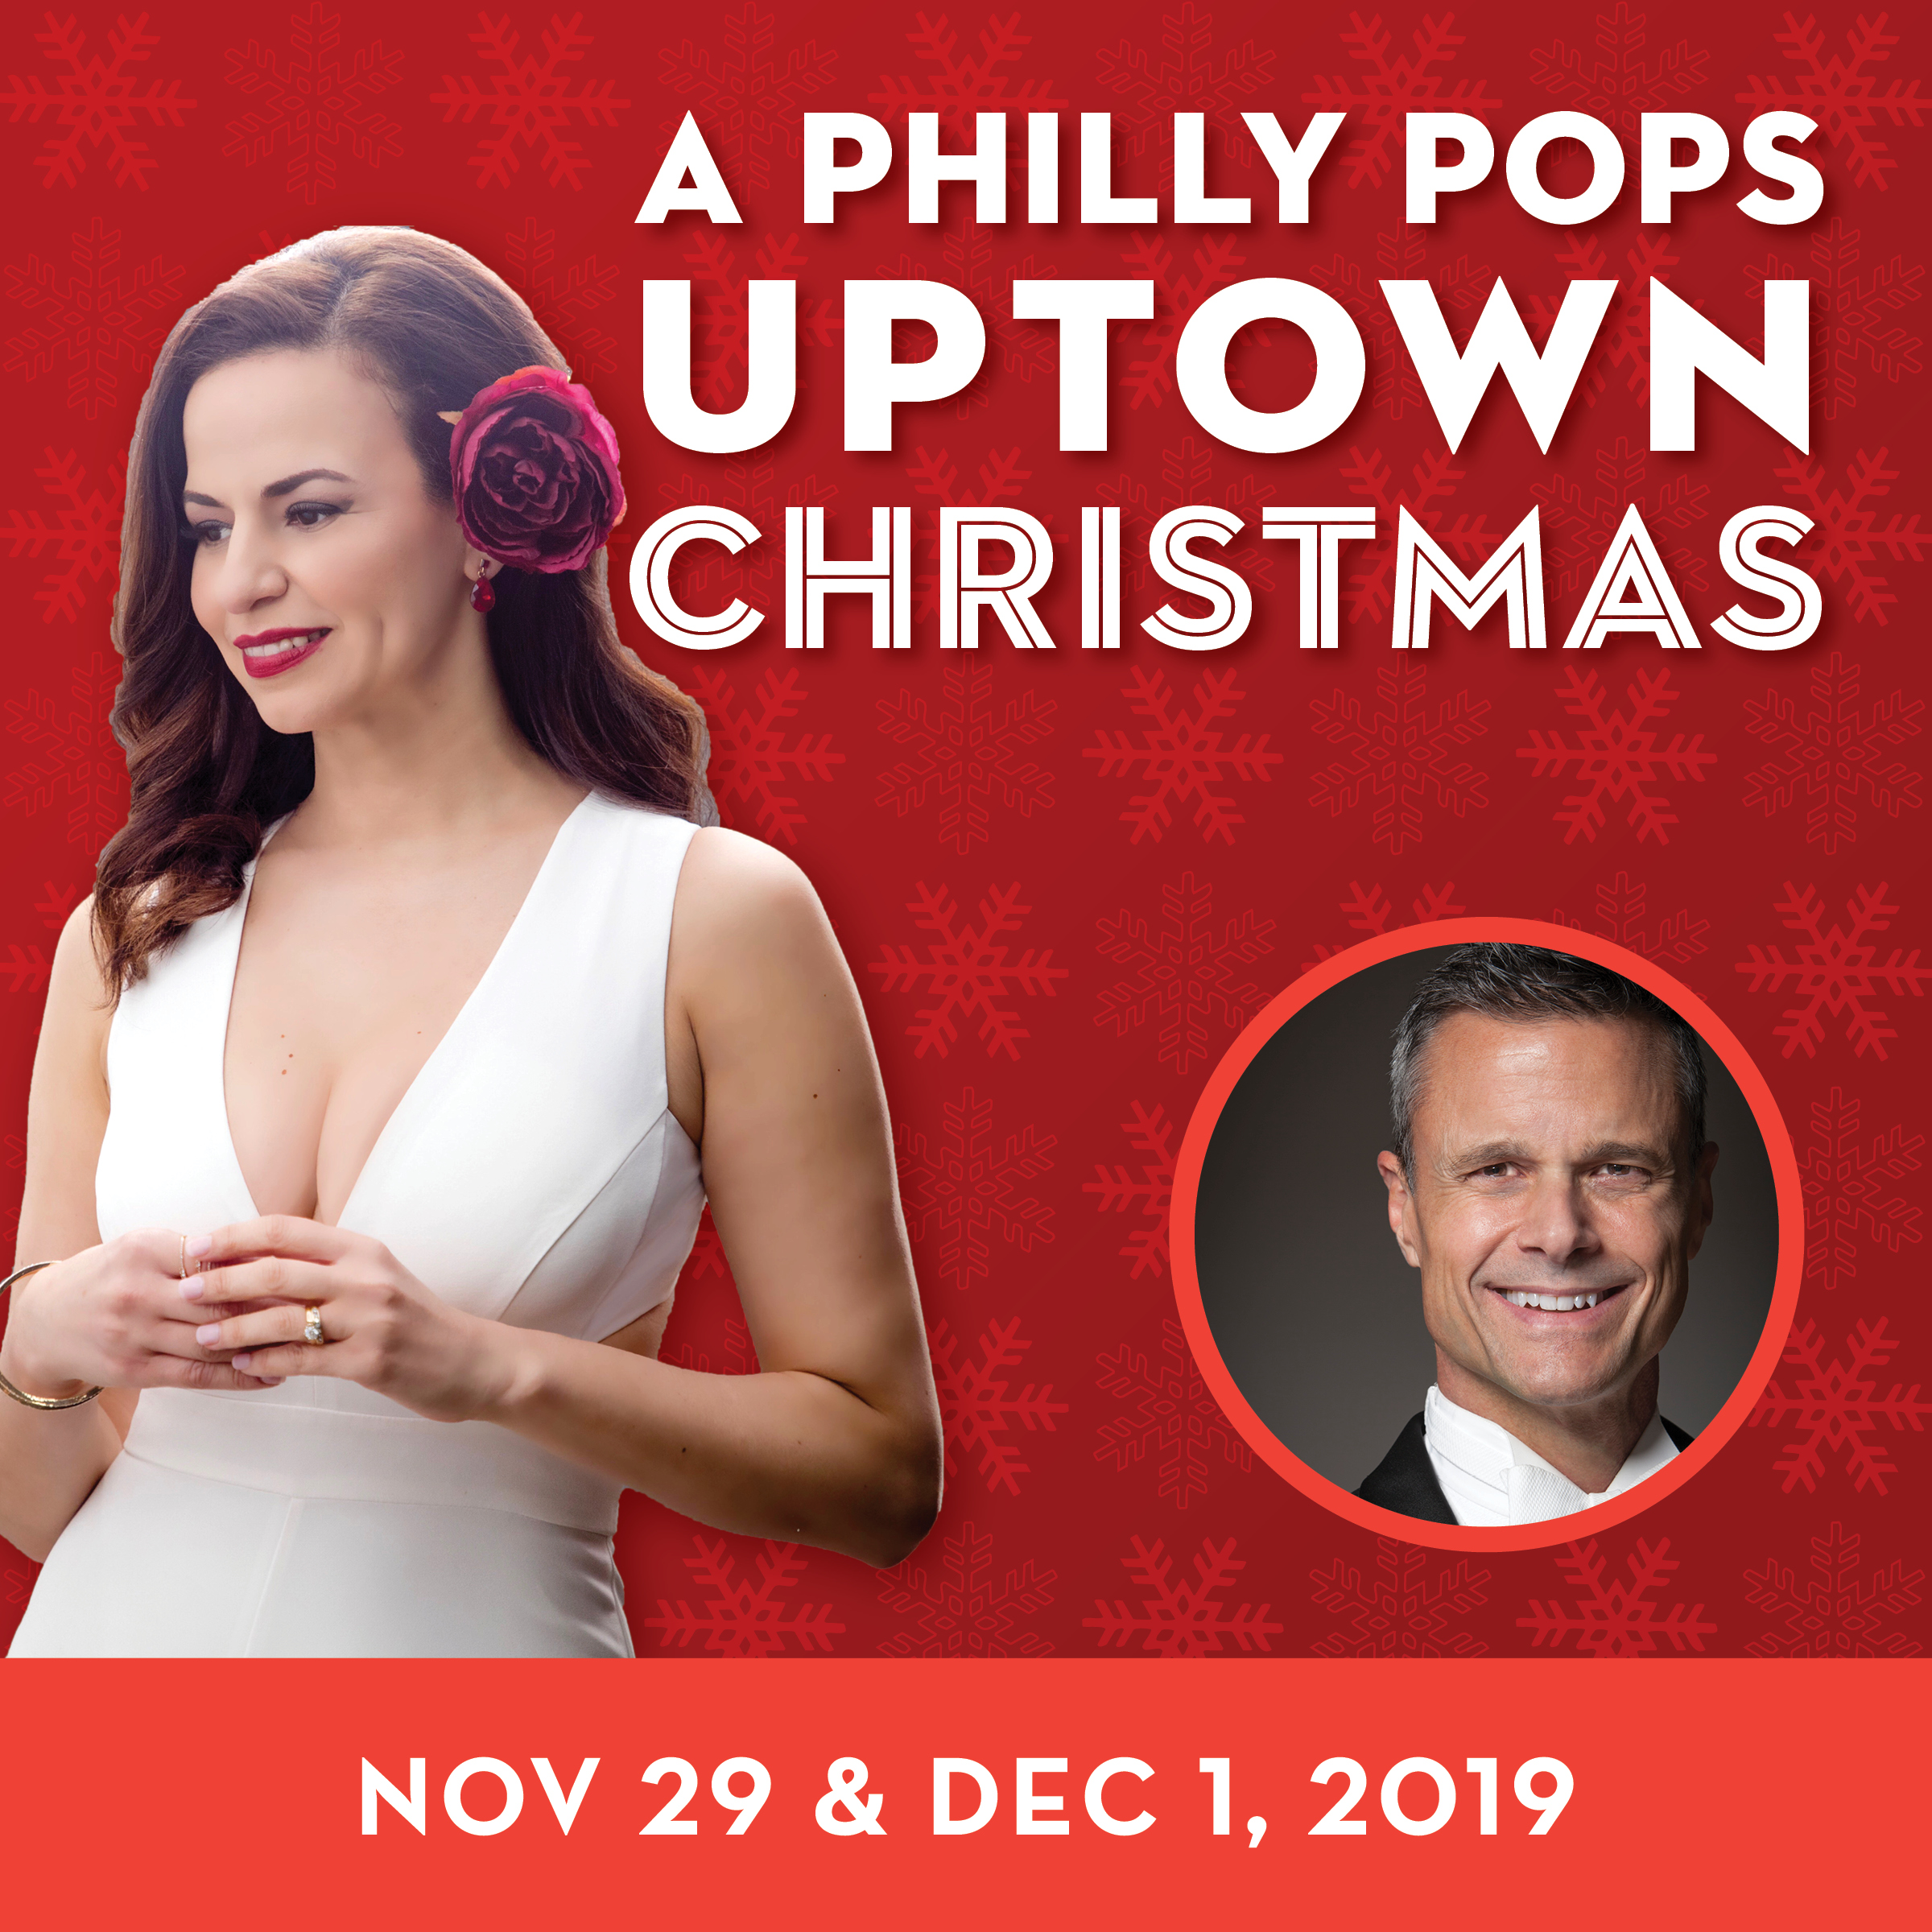 Philly Pops Christmas 2019 CELEBRATE CHRISTMAS WITH THE PHILLY POPS! | The Philly Pops